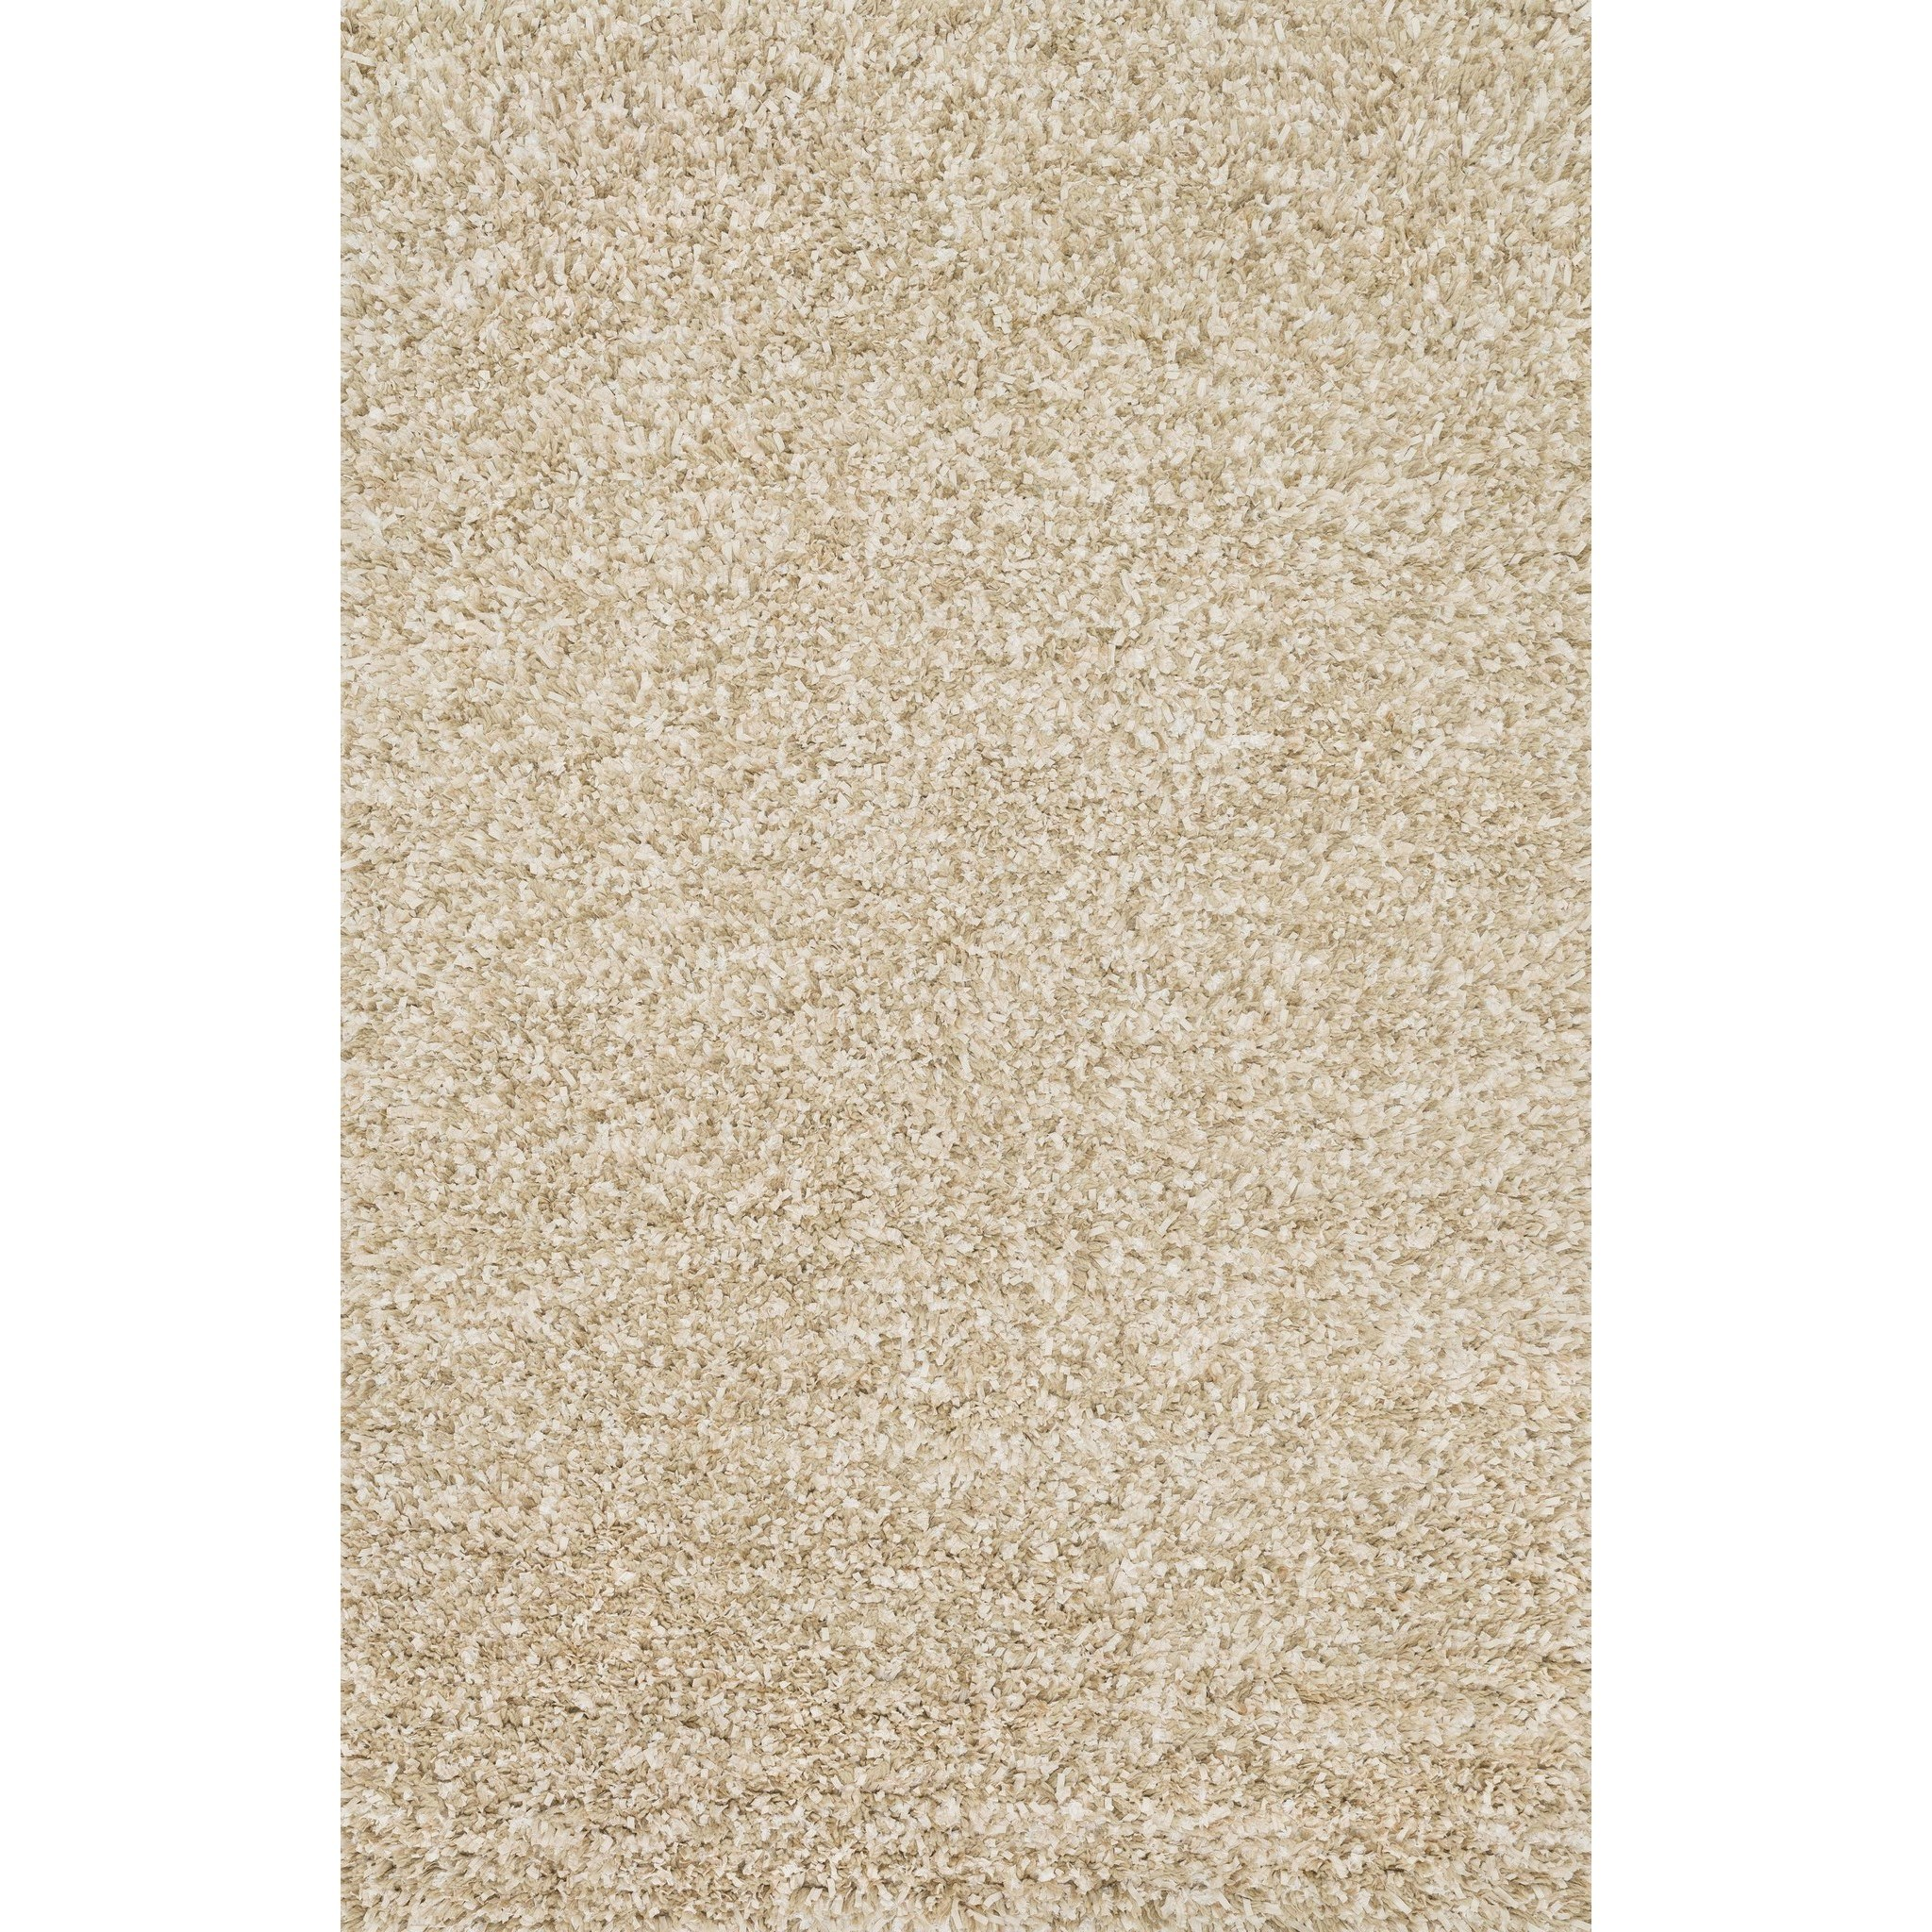 "Cleo Shag 3'-6"" x 5'-6"" Area Rug by Loloi Rugs at Virginia Furniture Market"